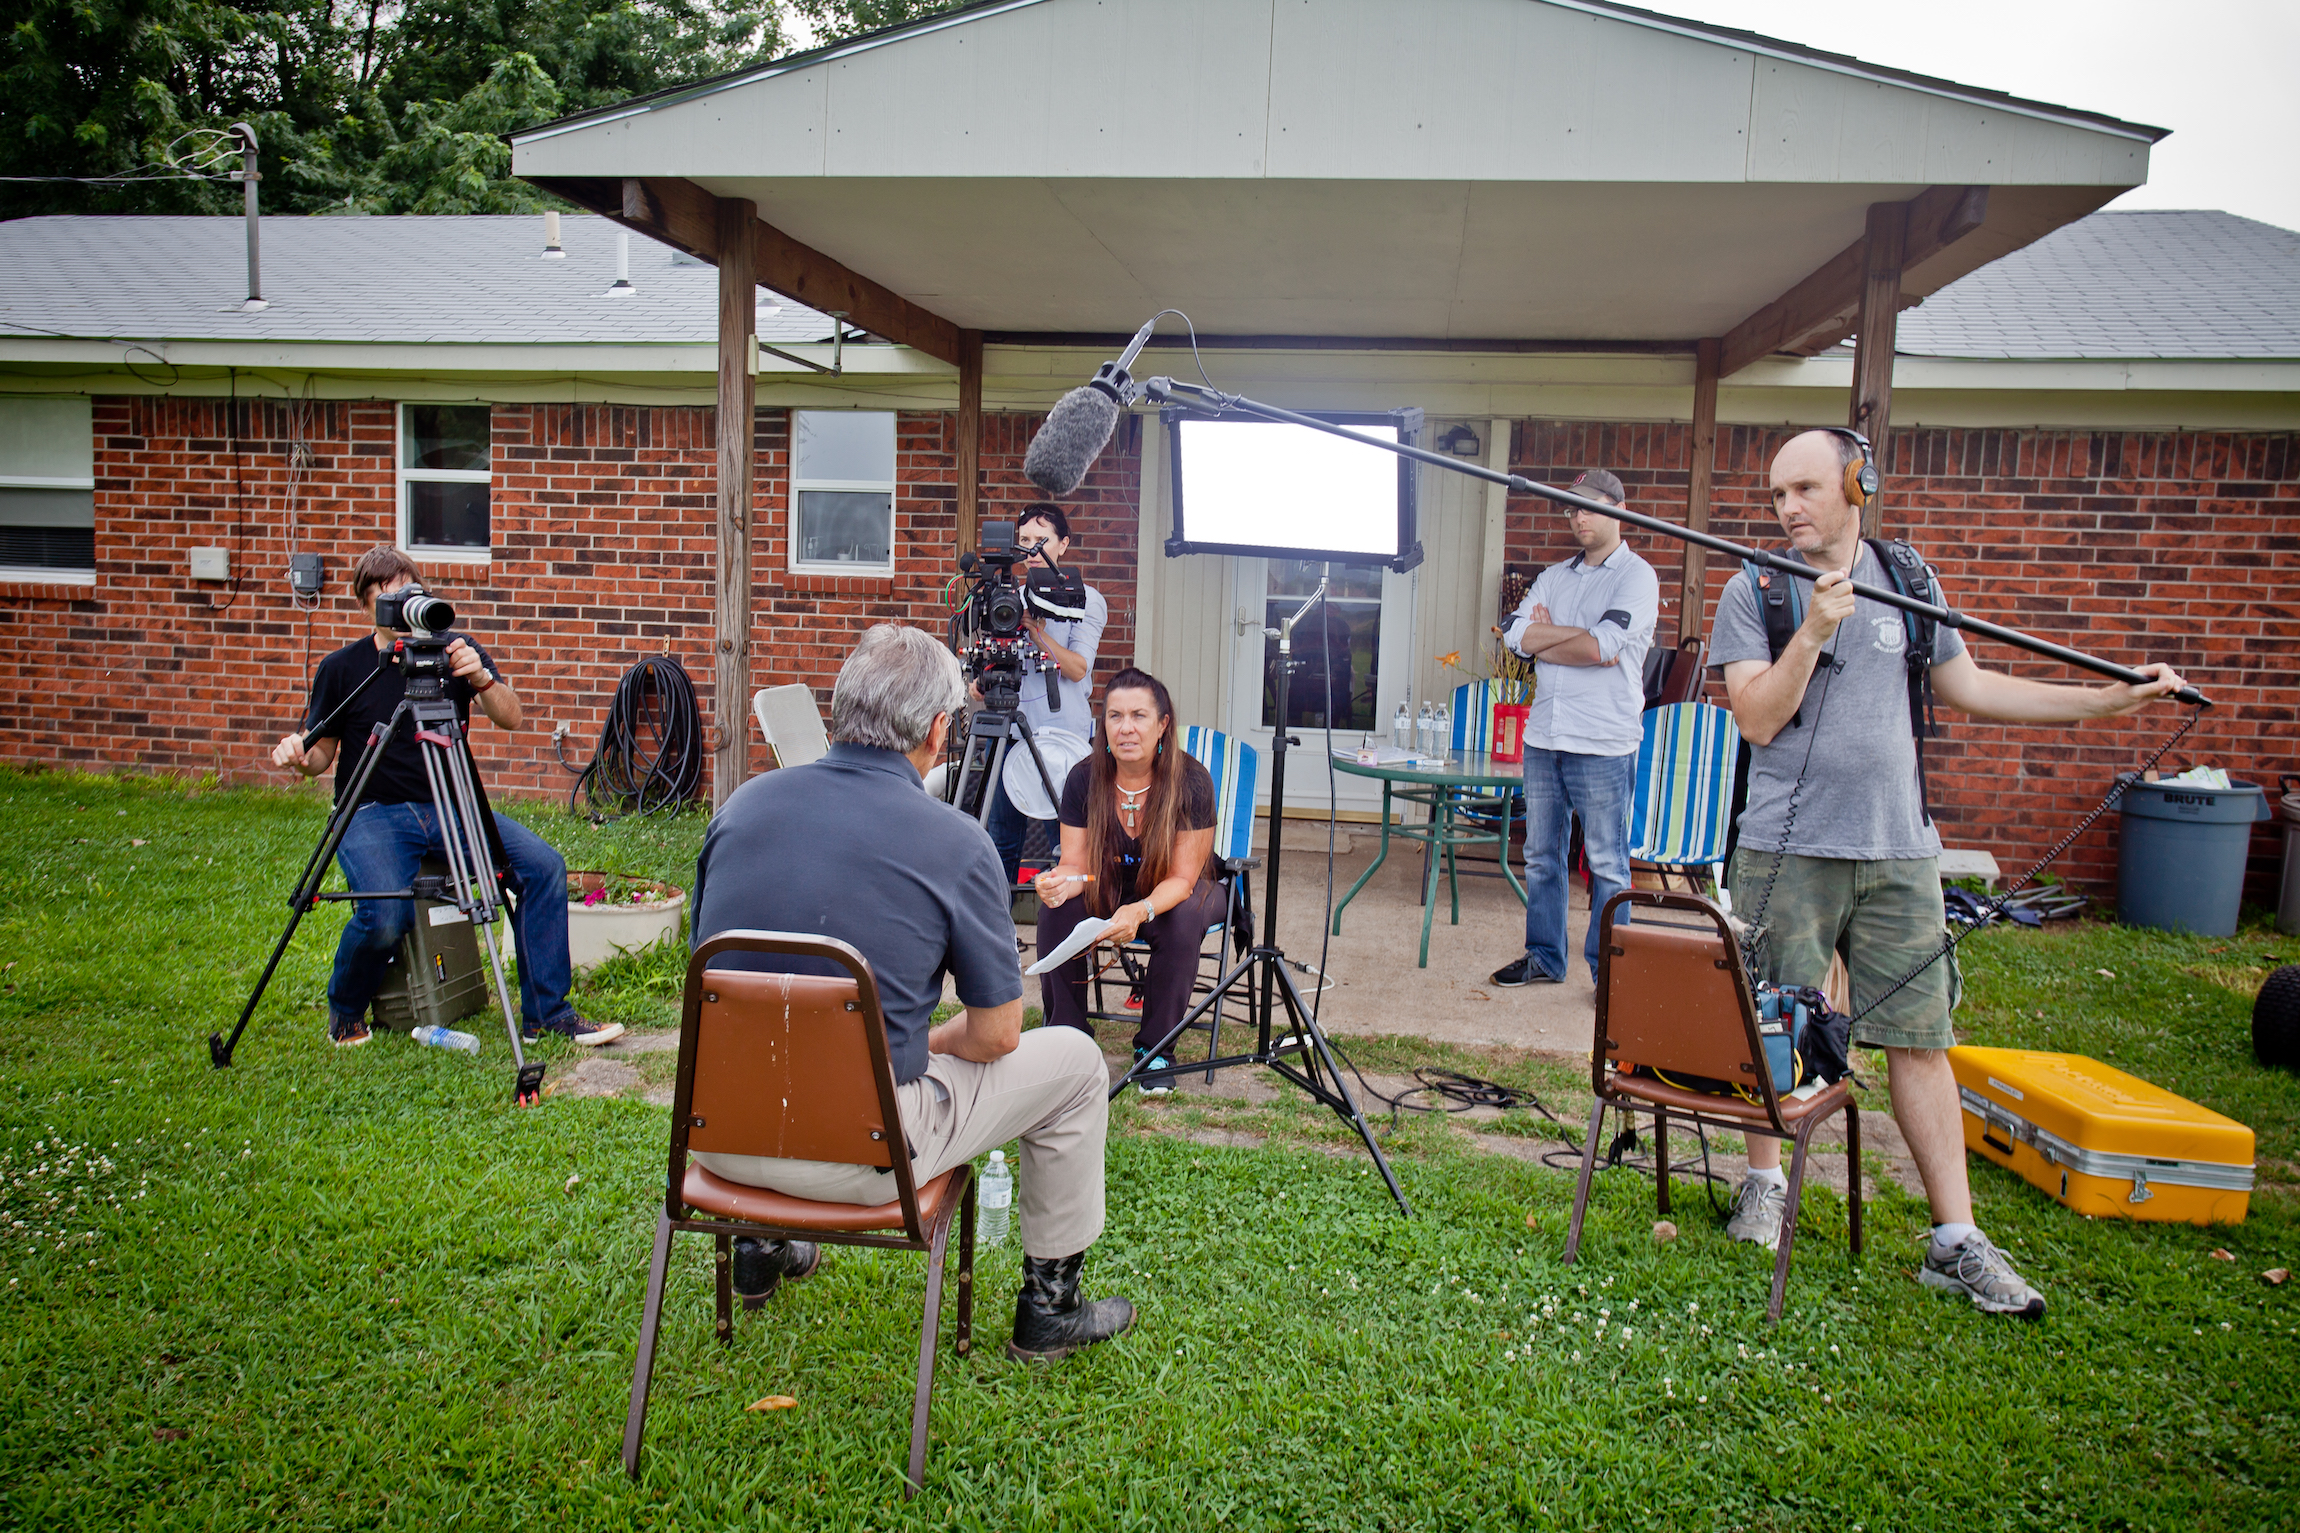 On location in Oklahoma, the Mankiller Documentary crew  interviews Chad Smith, former Principal Chief of the Cherokee Nation.